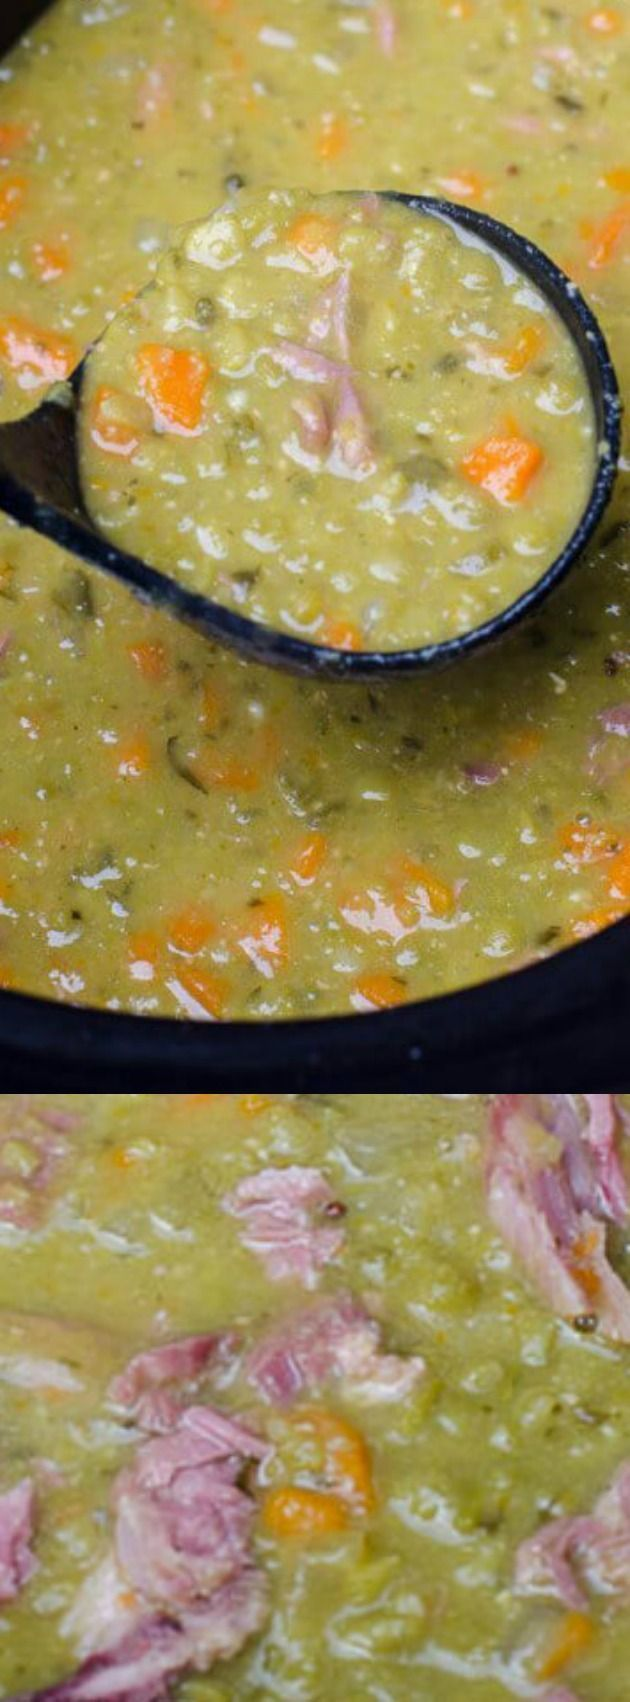 This Slow Cooker Split Pea Soup from Valerie's Kitchen is a fall favorite of ours! With the holidays coming up this recipe is a great way to make use of that leftover bone from your holiday ham.